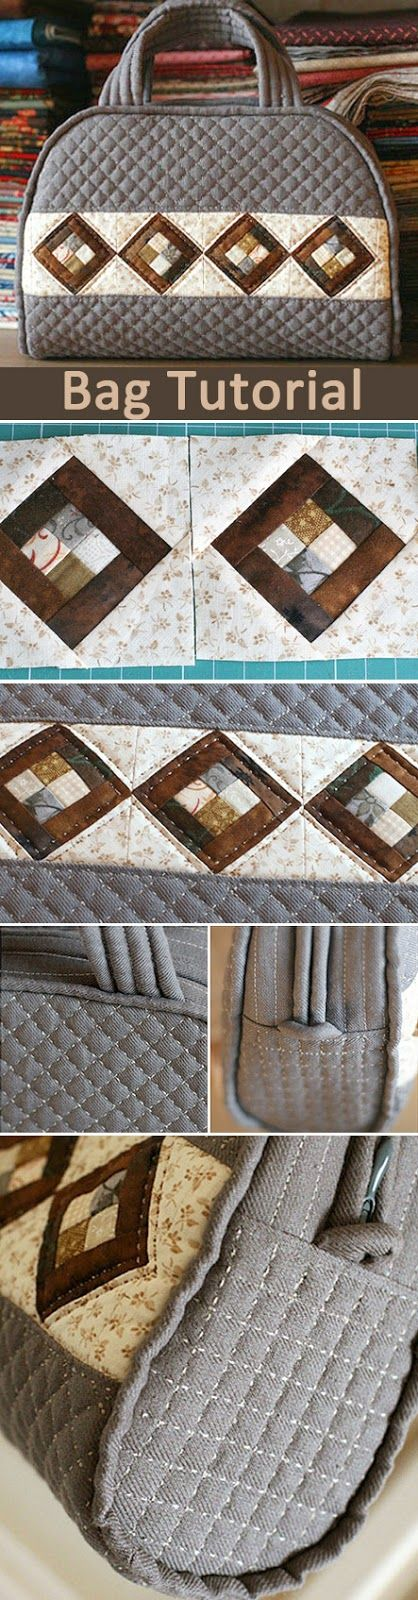 How to sew a bag in patchwork & quilting technique. DIY tutorial in pictures. Лоскутная сумка http://www.handmadiya.com/2015/09/quilt-patchwork-bag.html